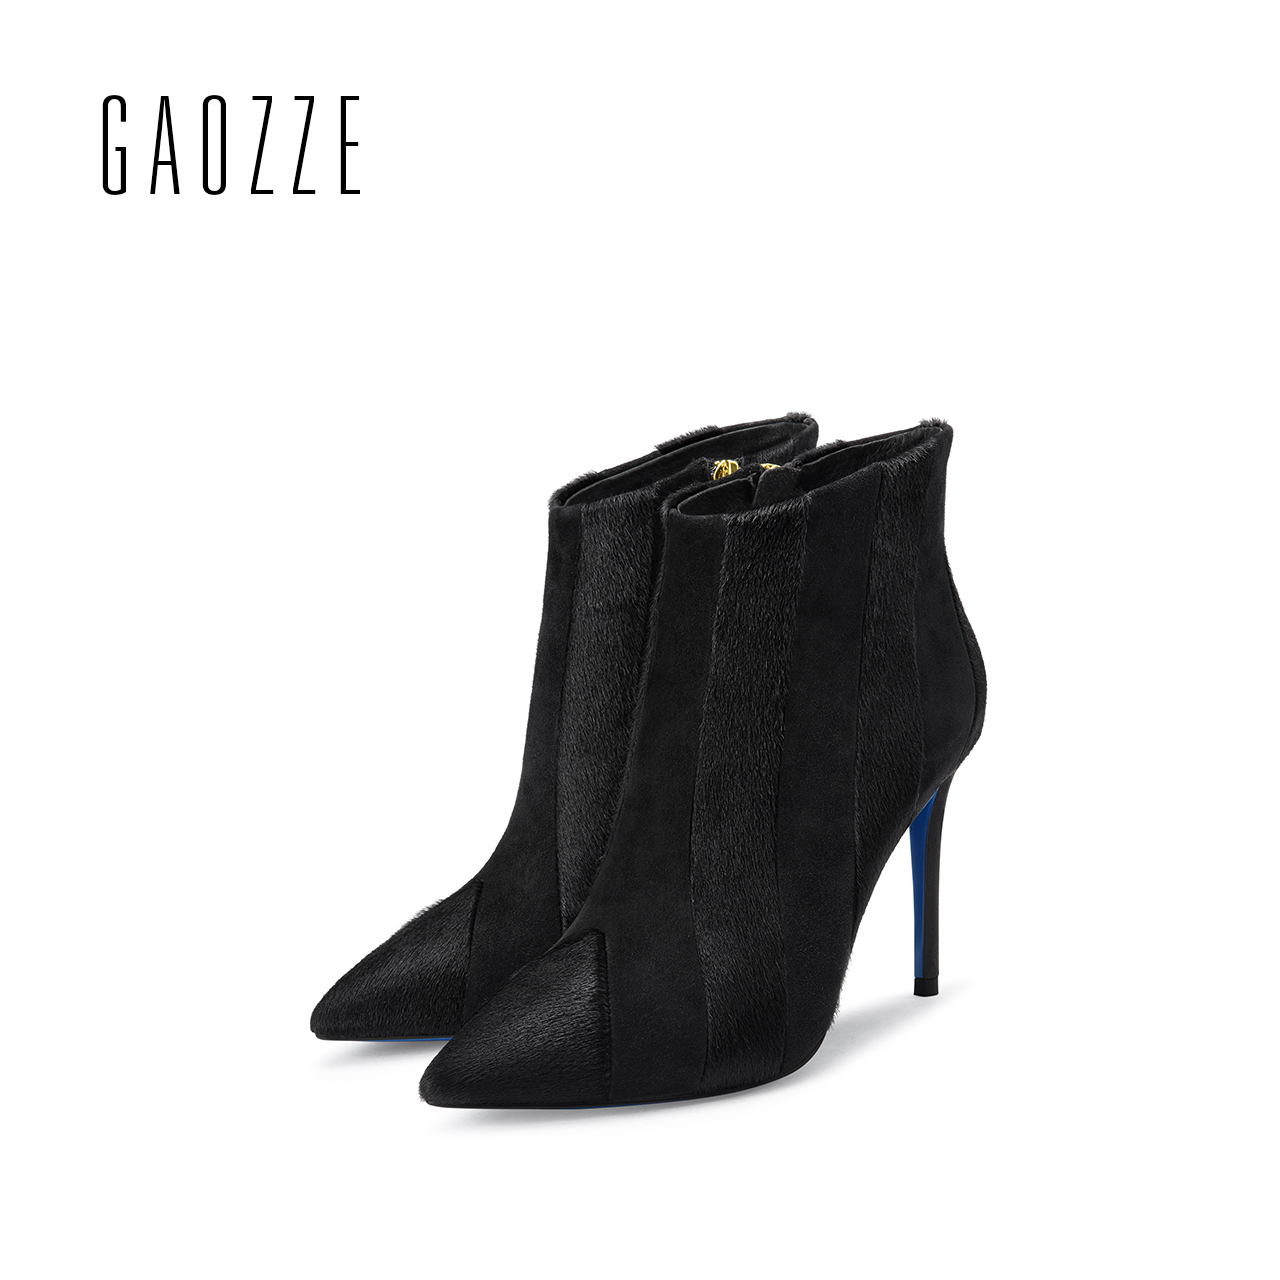 GAOZZE genuine leather boots women pointed toe sexy thin high-heeled boots female side zipper women ankle boots 2017 autumn new ang 90 магнит сказочные мотыльки 10х10